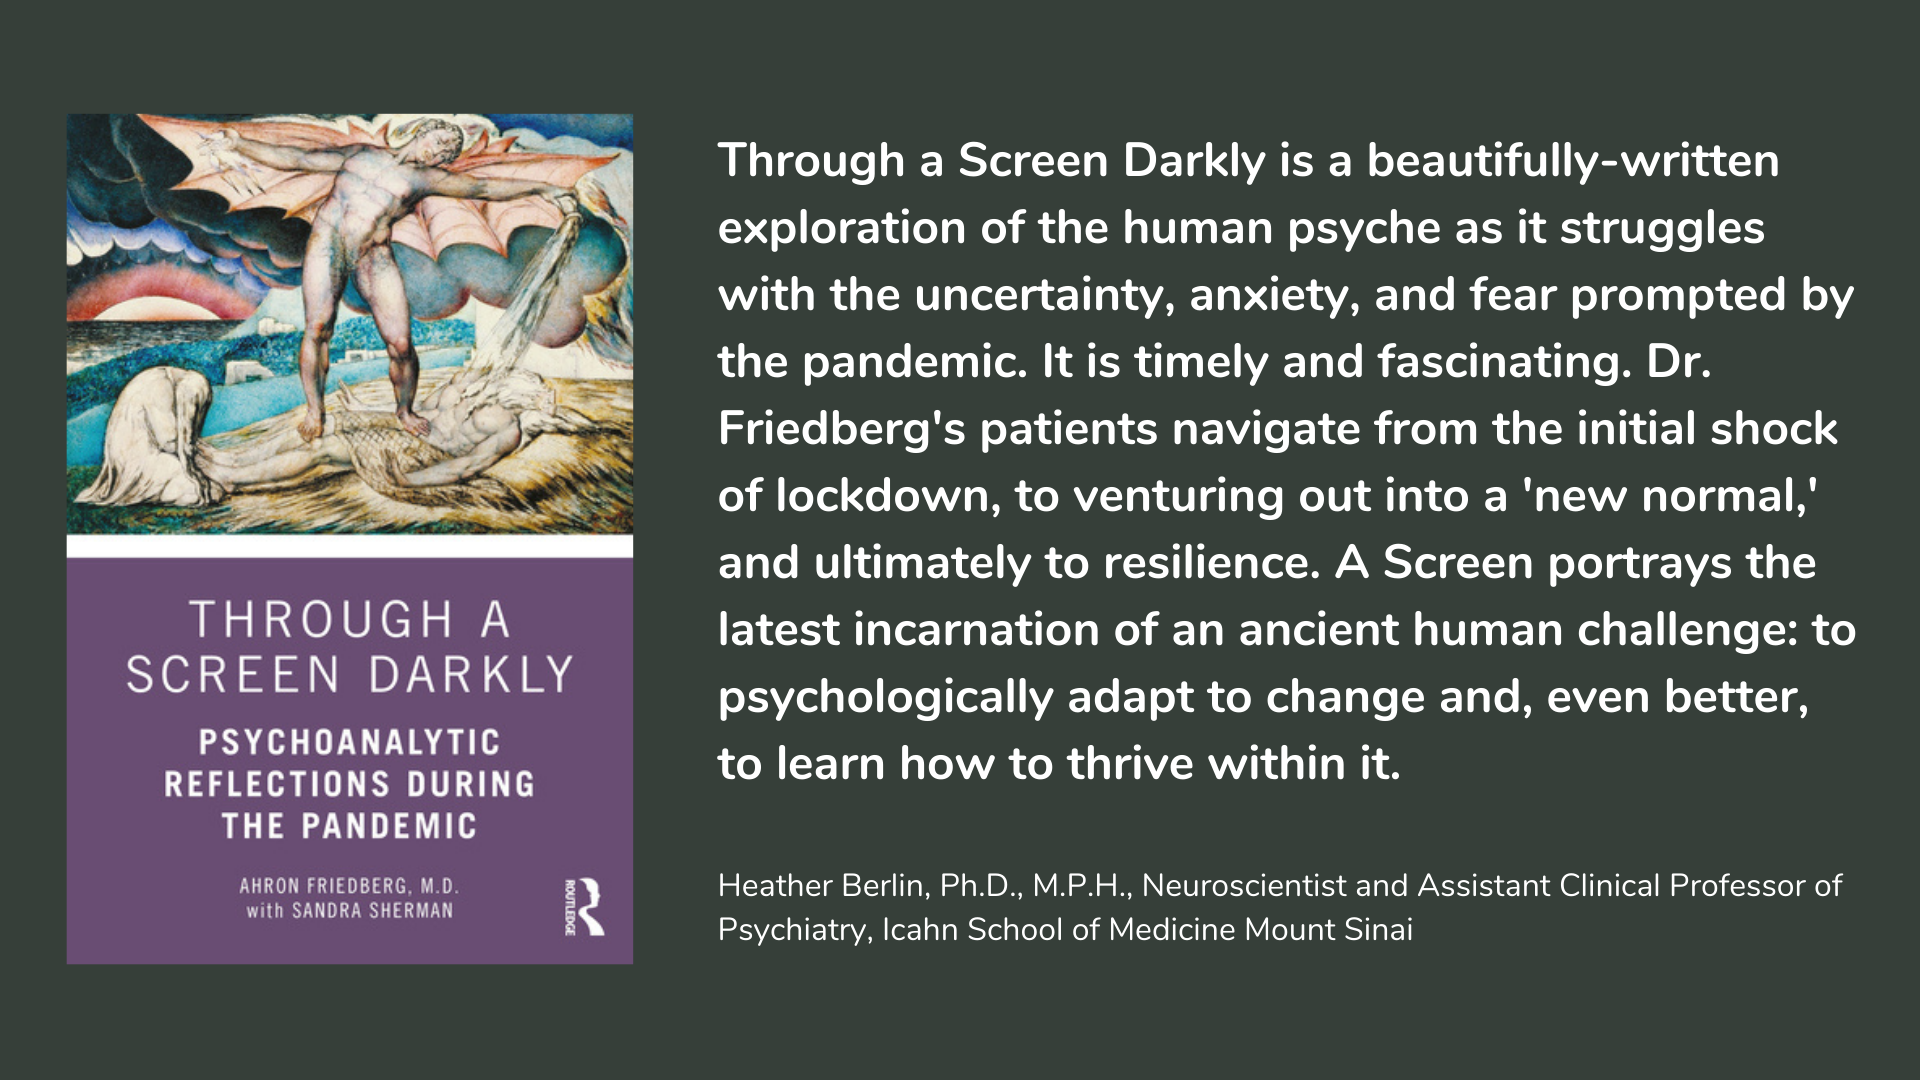 Through a Screen Darkly Psychoanalytic Reflections During the Pandemic. Book cover and description